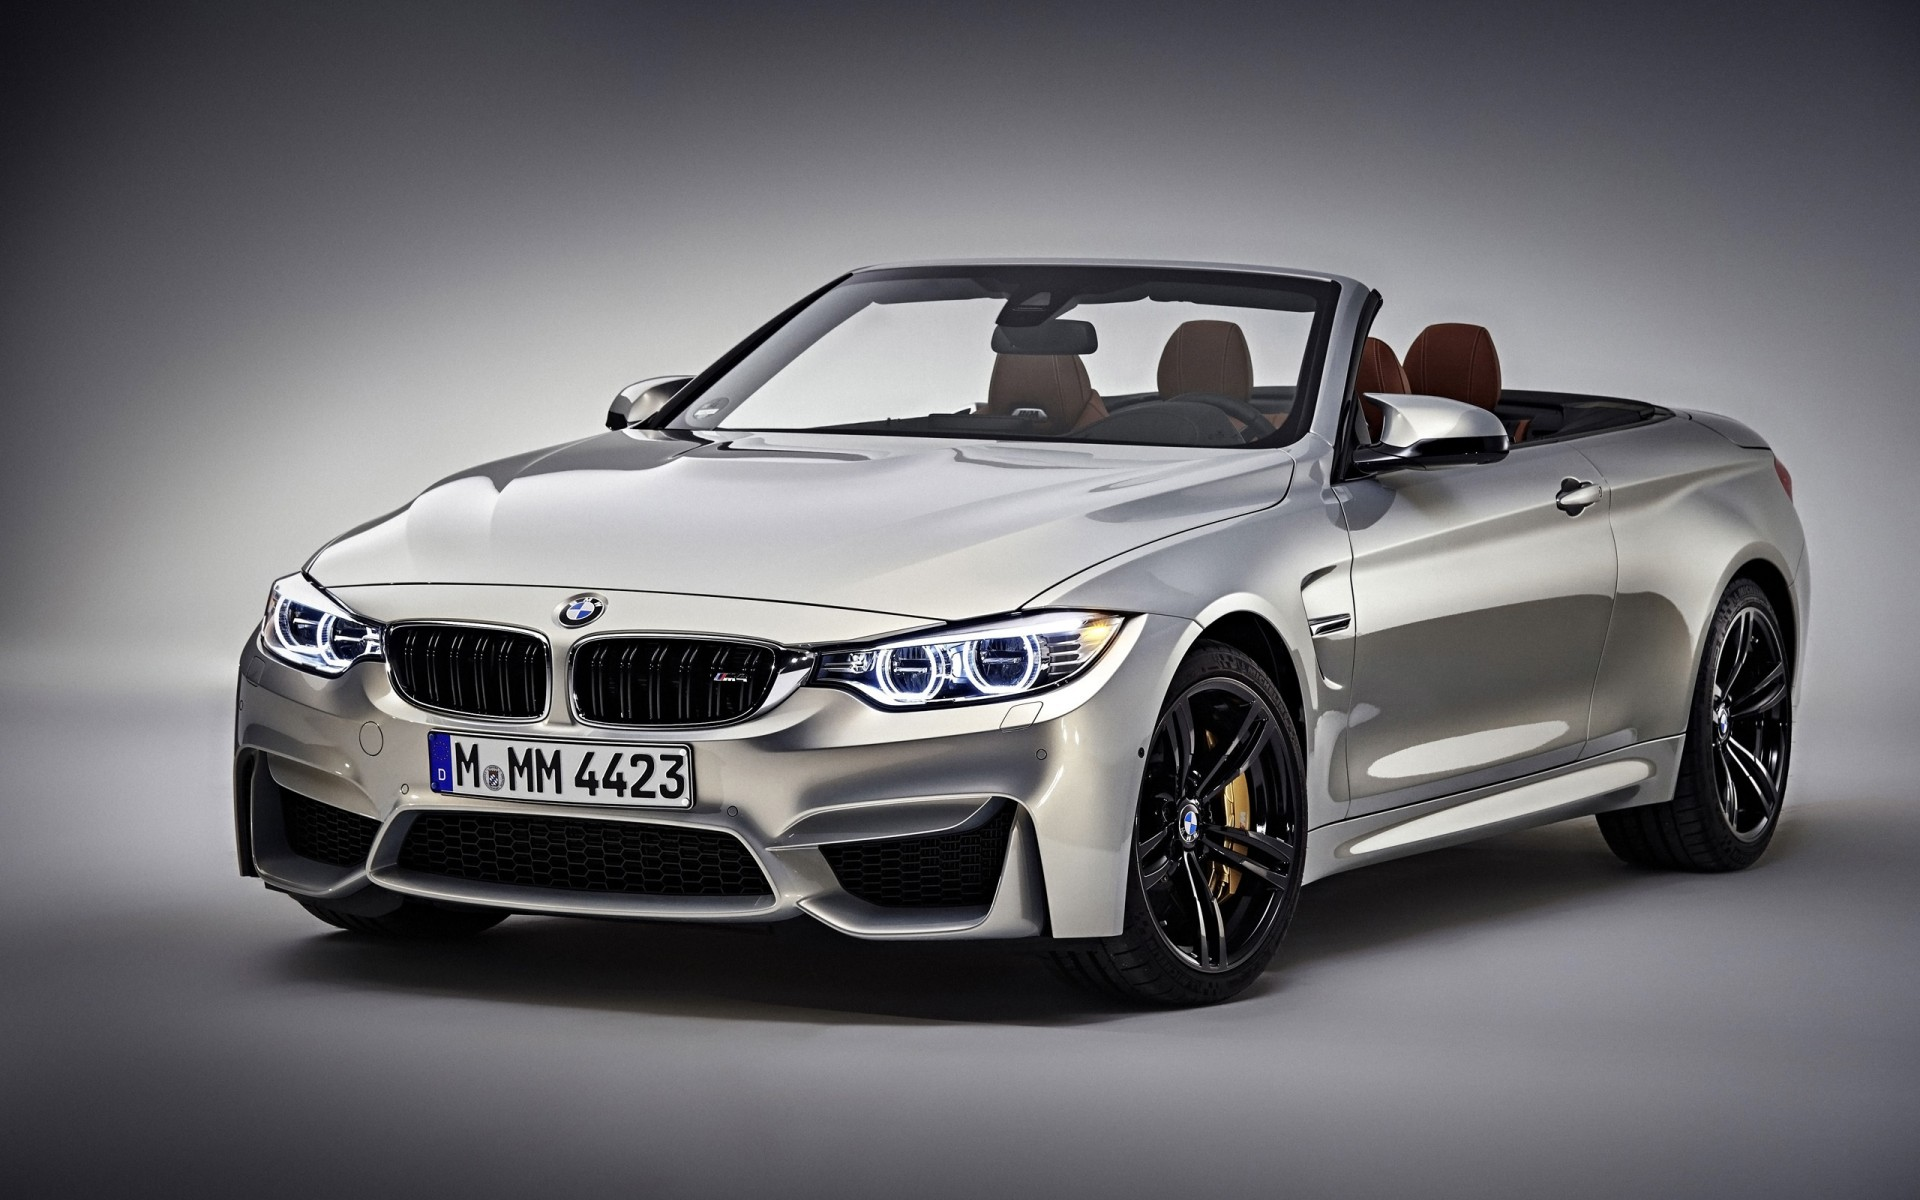 2015 BMW M4 Convertible Wallpaper | HD Car Wallpapers